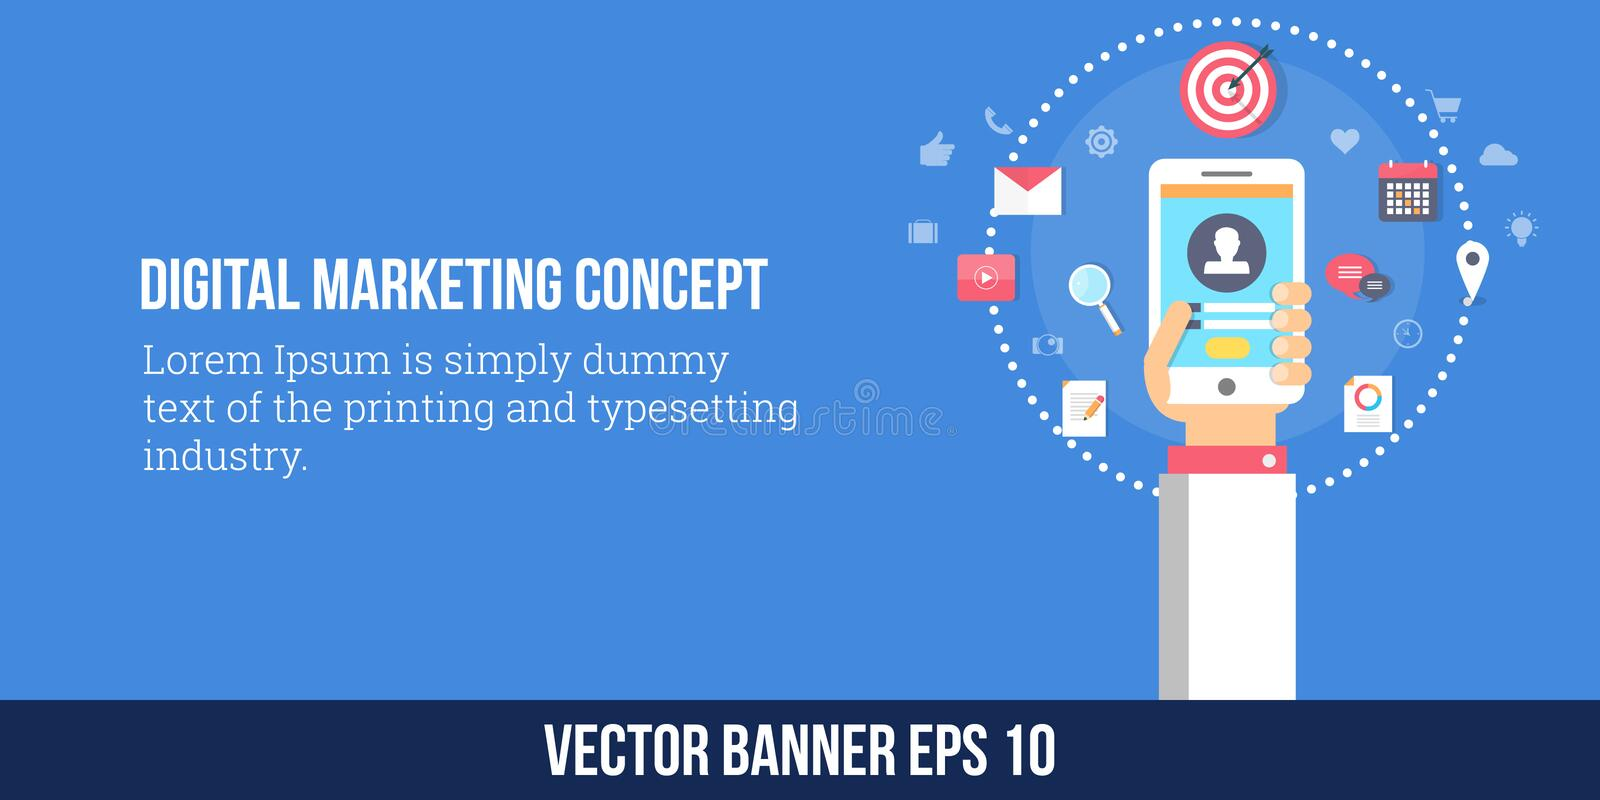 Márketing de Digitaces, estrategia de marketing móvil Bandera plana del vector del diseño libre illustration